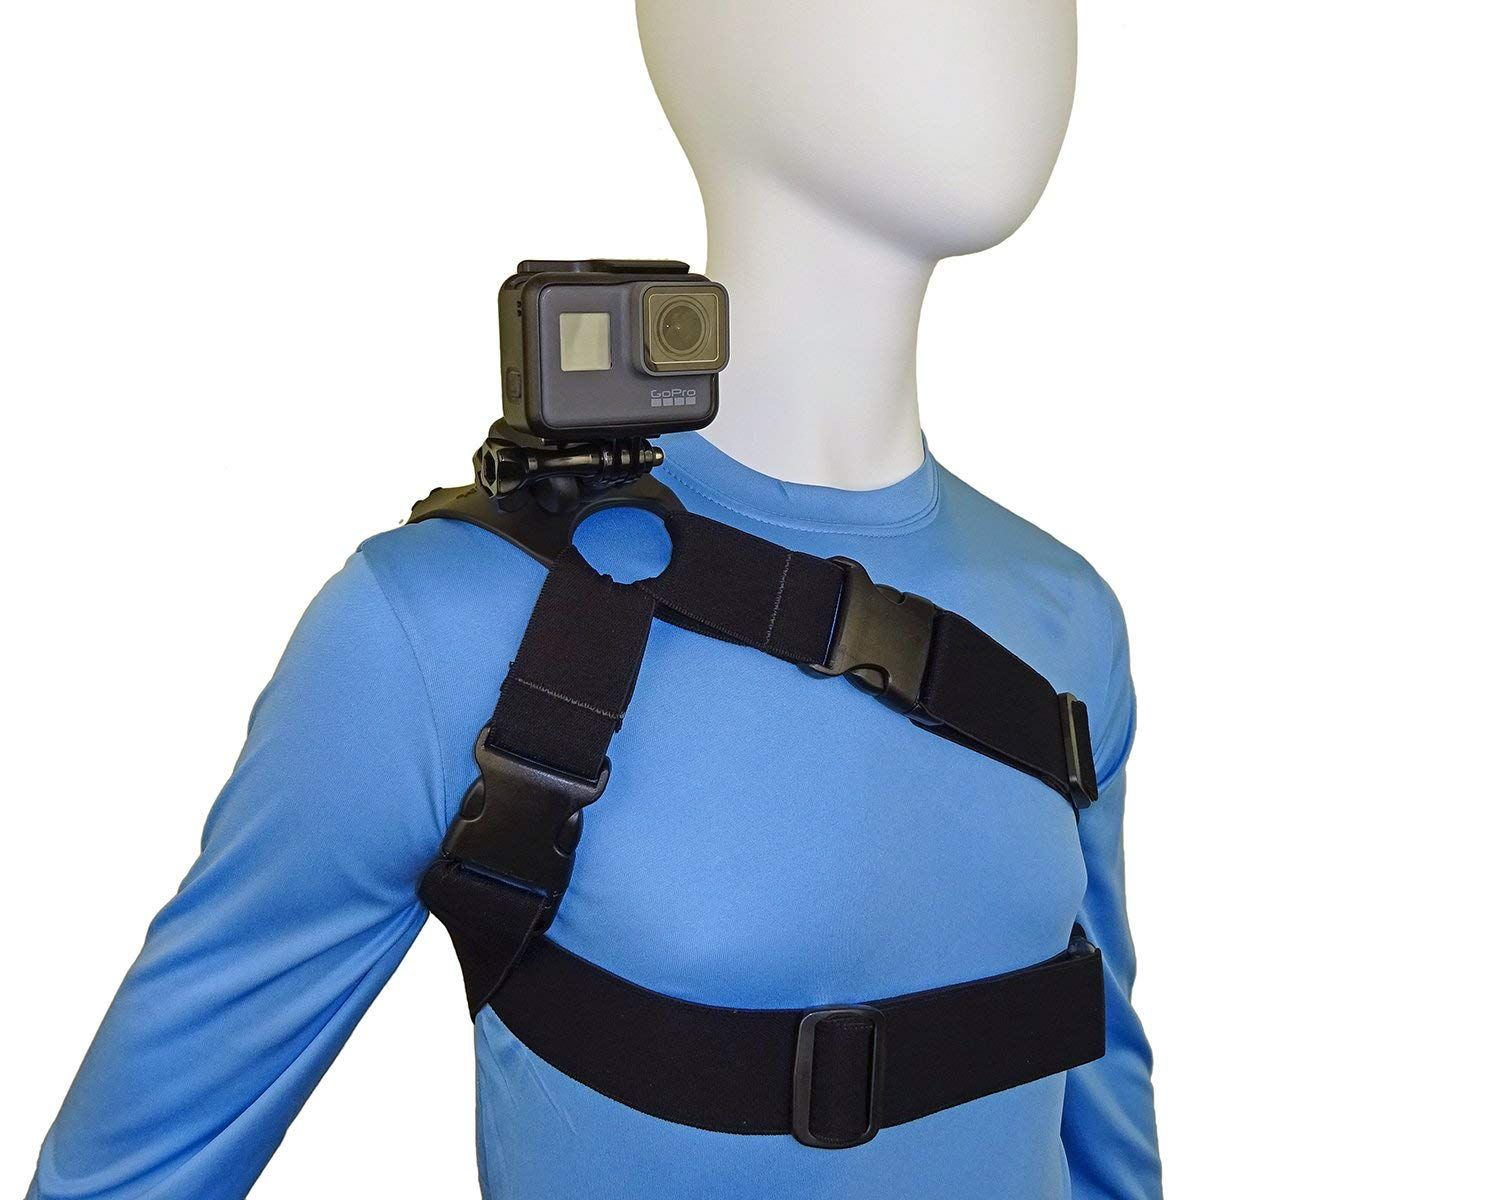 STUNTMAN Chest Mount for GoPro and Other Action Cameras